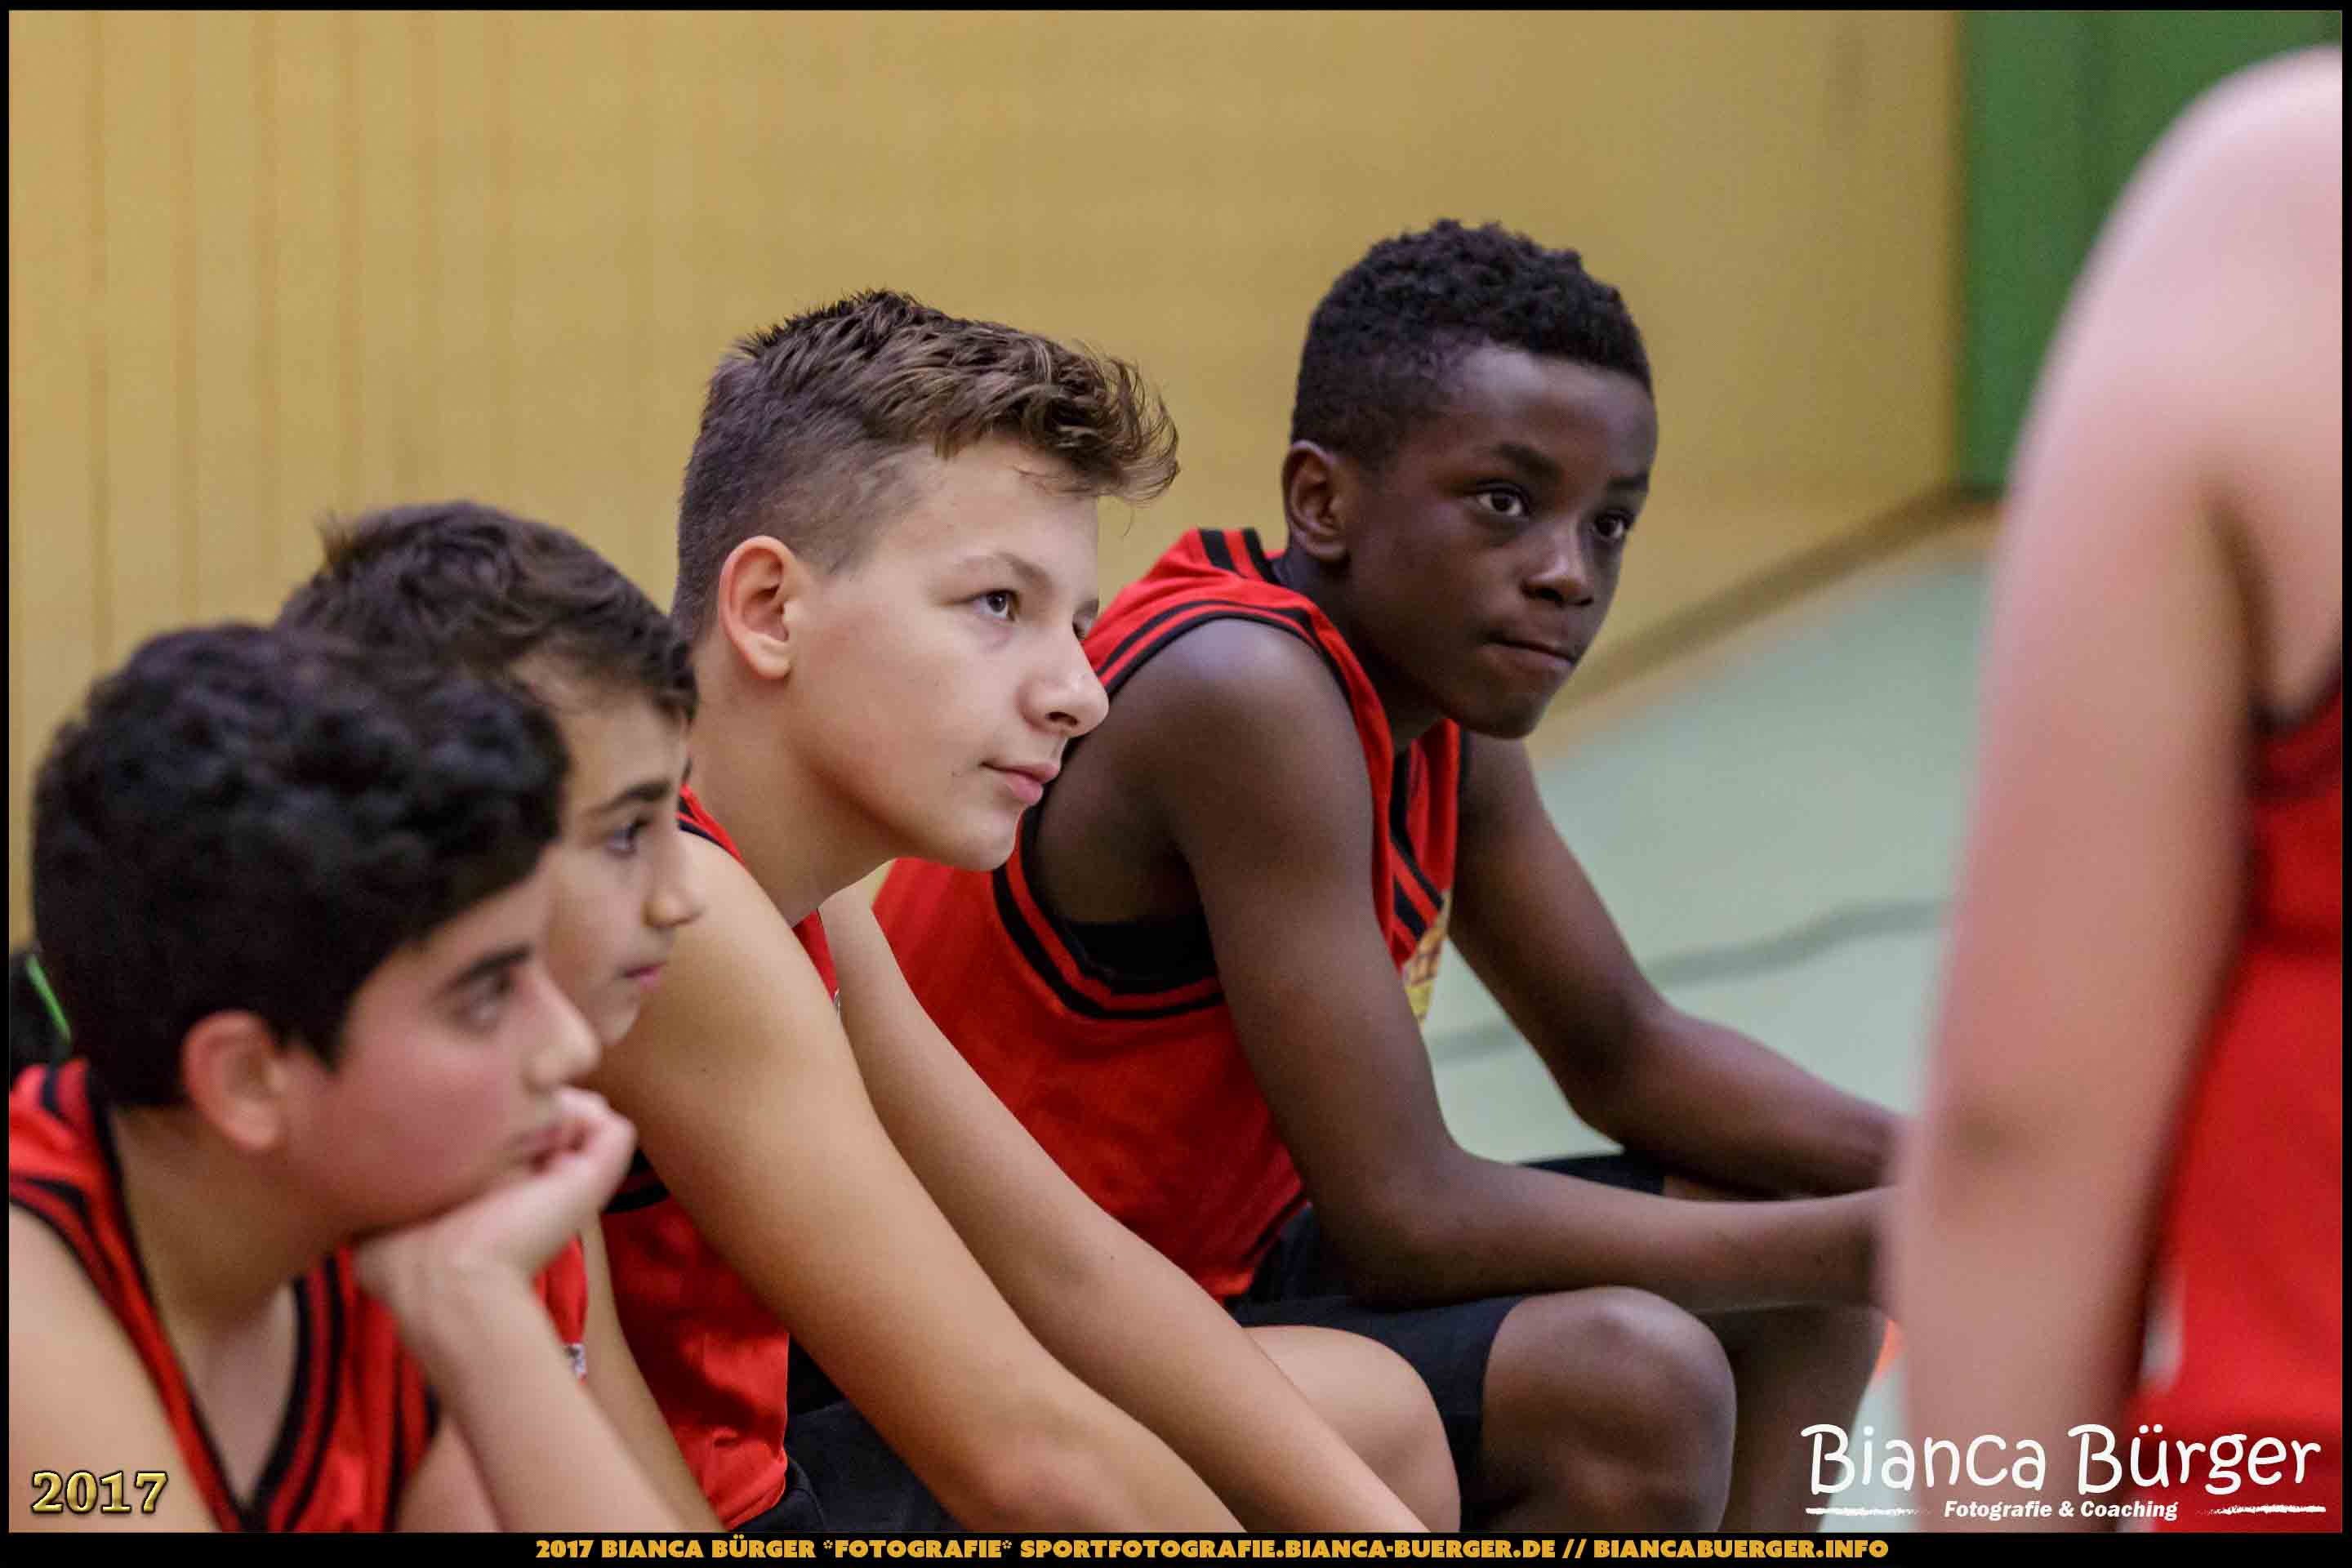 BZB mU14 - Weddinger Wiesel 2 vs DBV Charlottenburg 3 (Basketball)